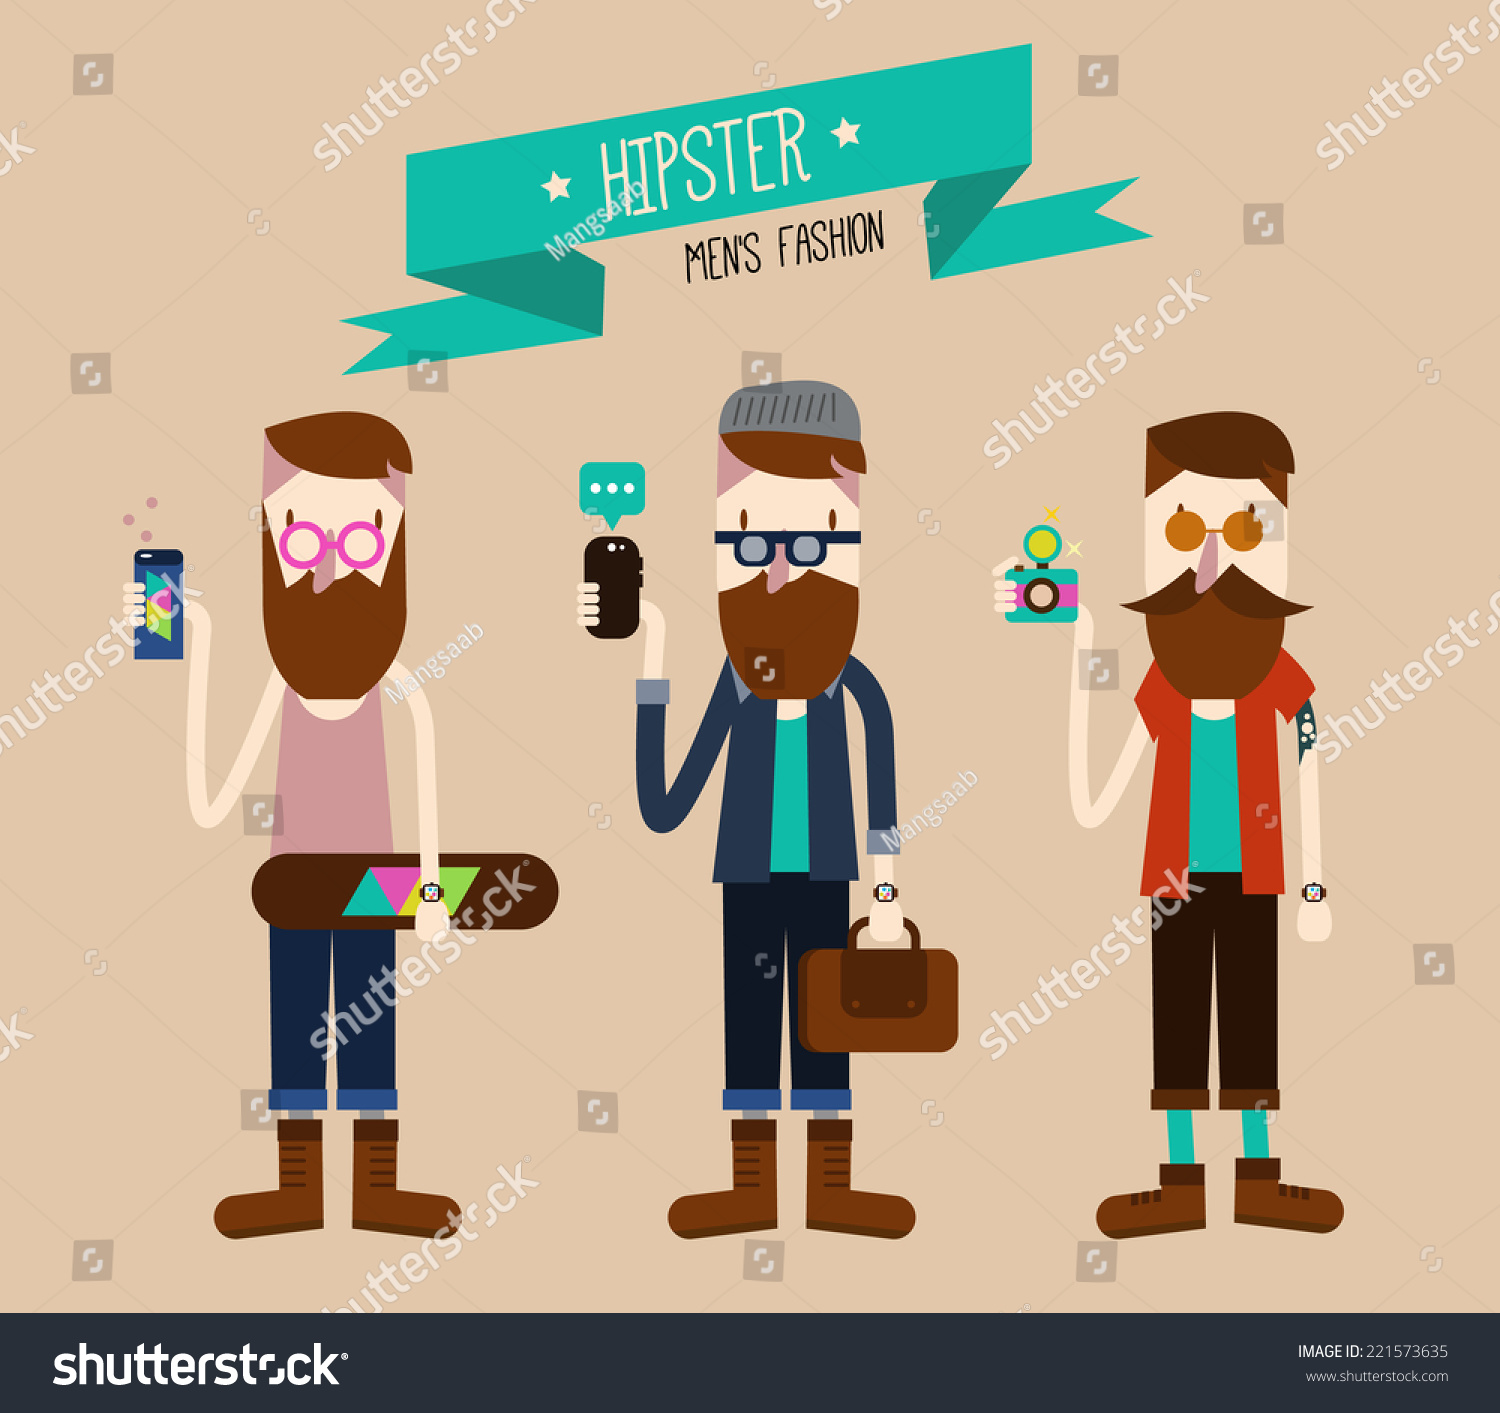 Character Design Set : Hipster fashion style flat character design set vector